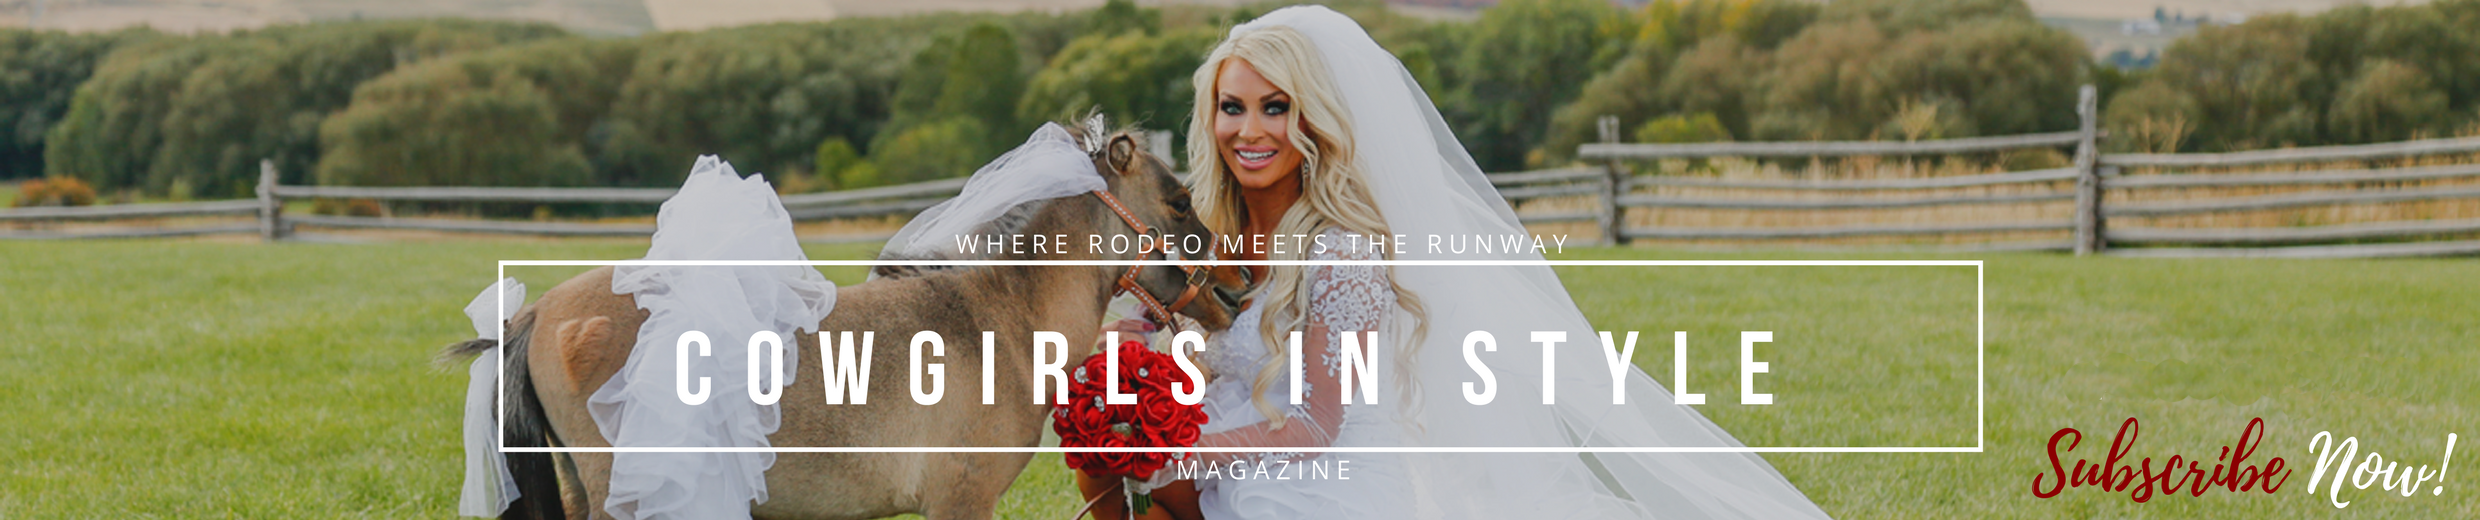 Cowgirls In Style Magazine - Cowgirl Fashion - Rodeo, Pageantry, everything Cowgirl